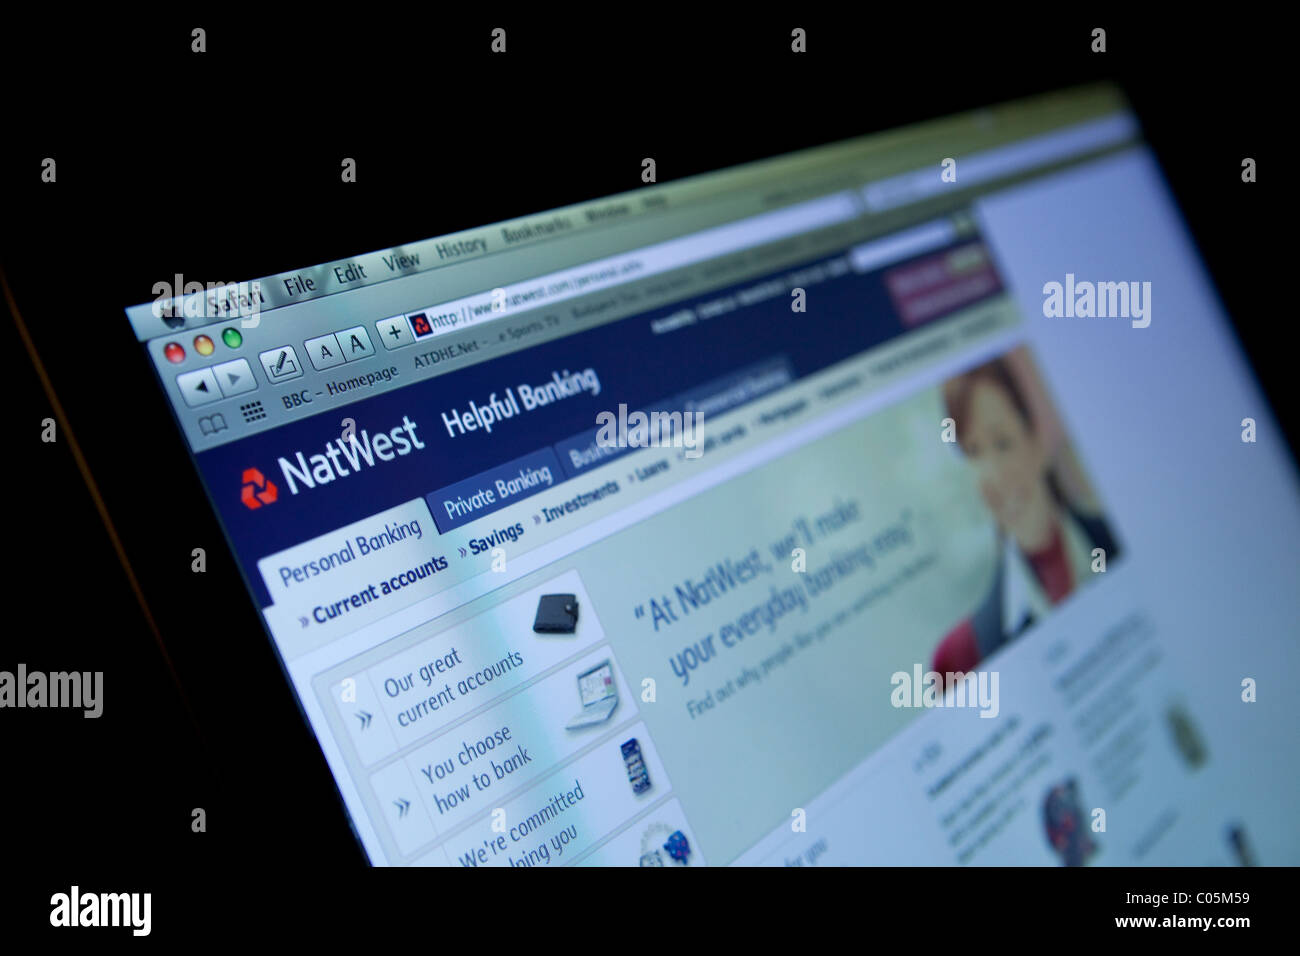 NatWest banque en ligne home page Photo Stock